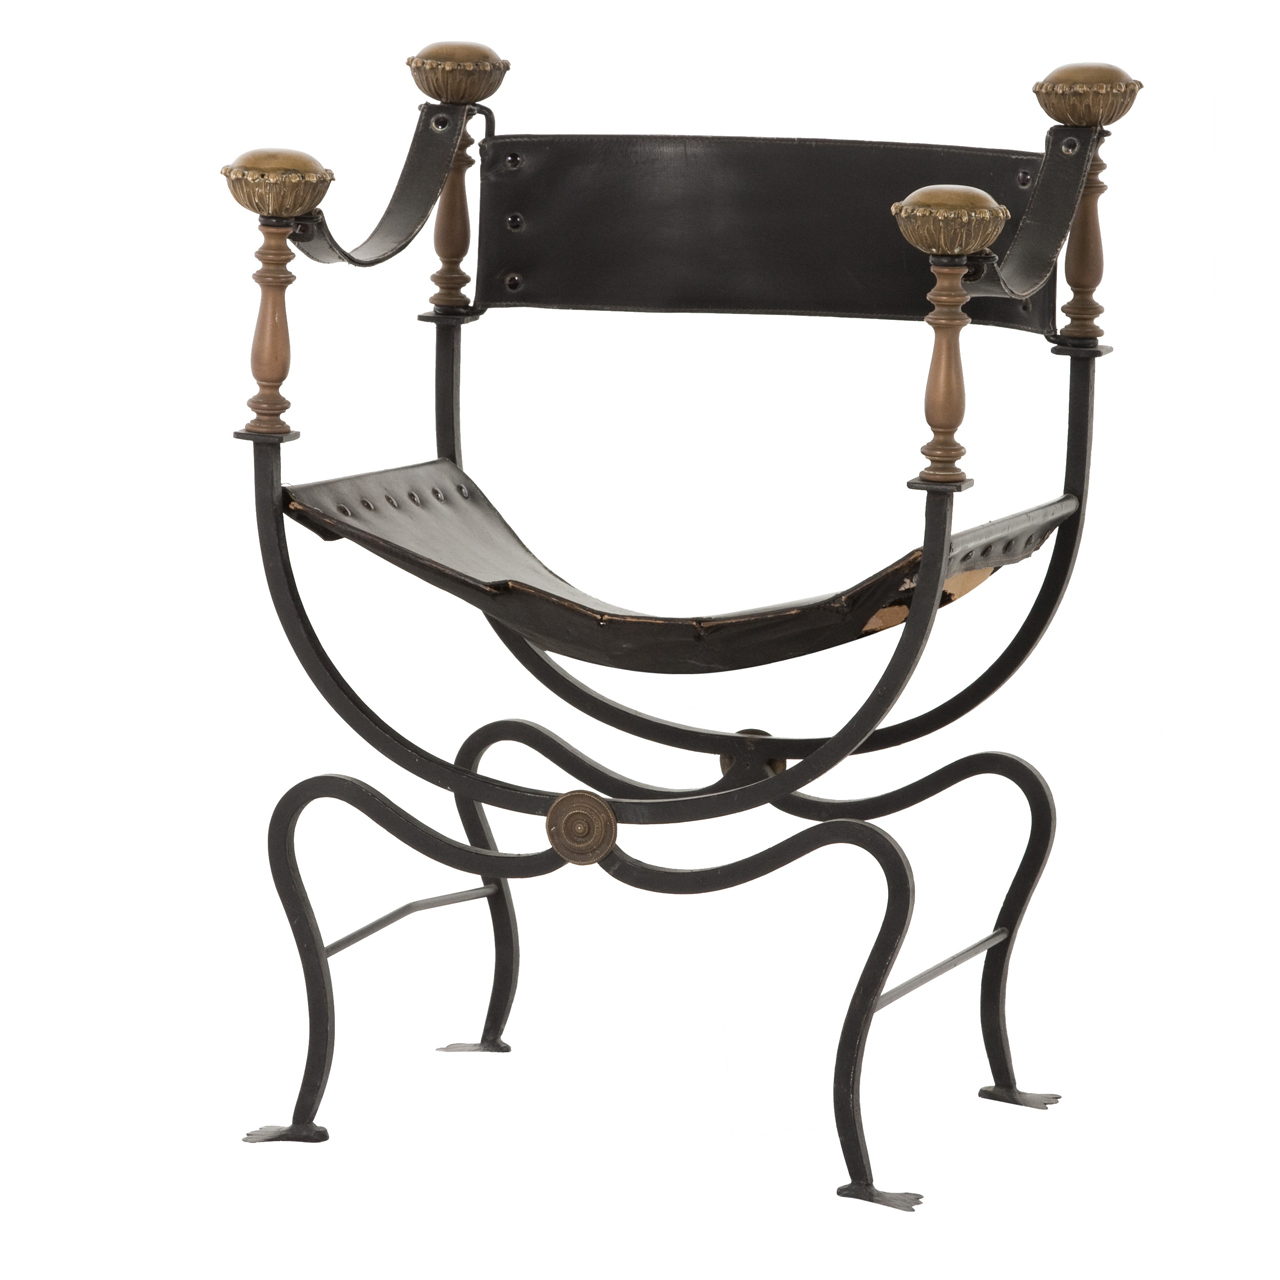 - Antique Wrought Iron Chair